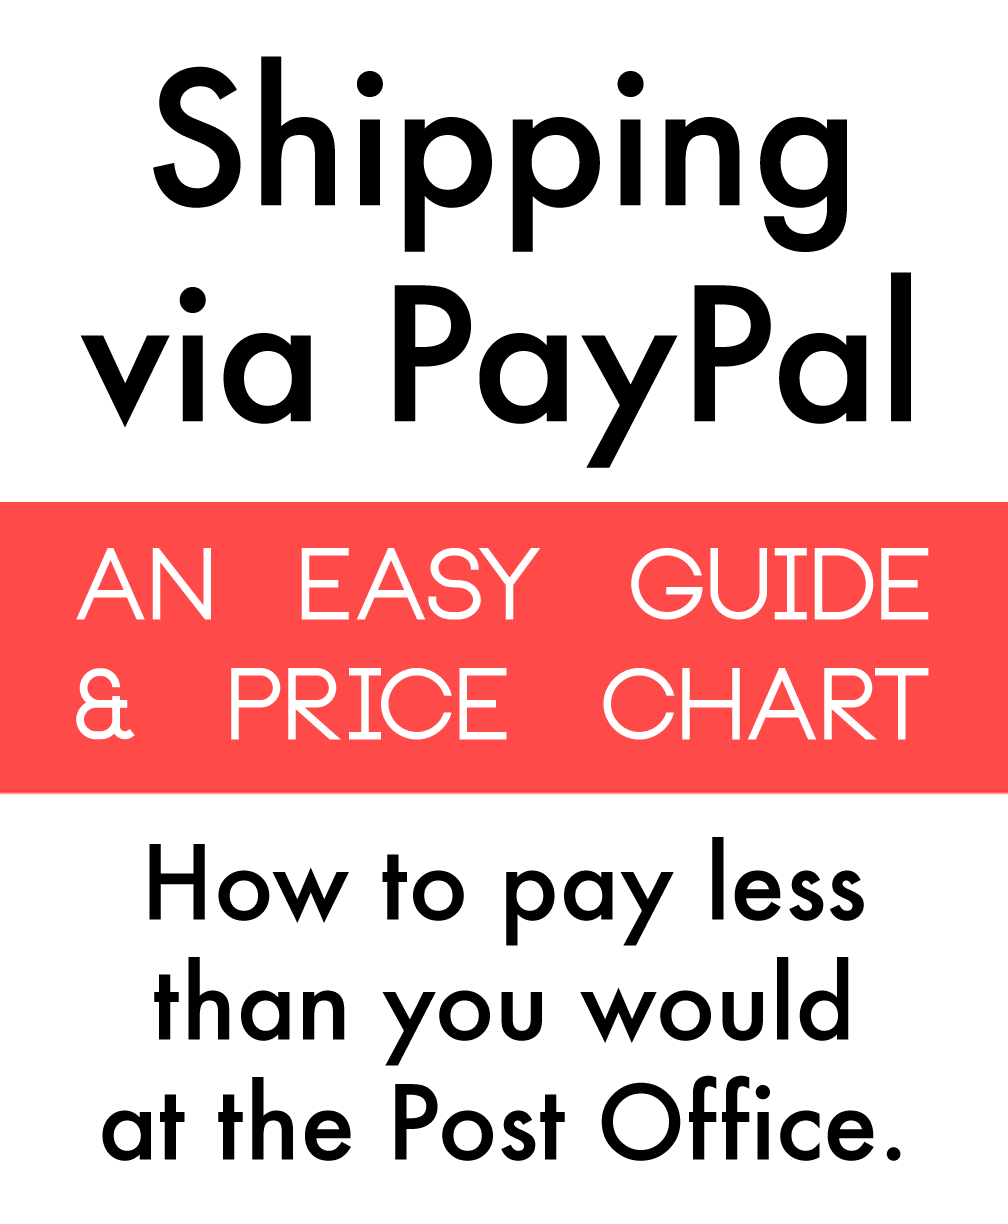 How to Ship on PayPal for Cheaper than the Post Office - A Guide on Oaxacaborn dot com